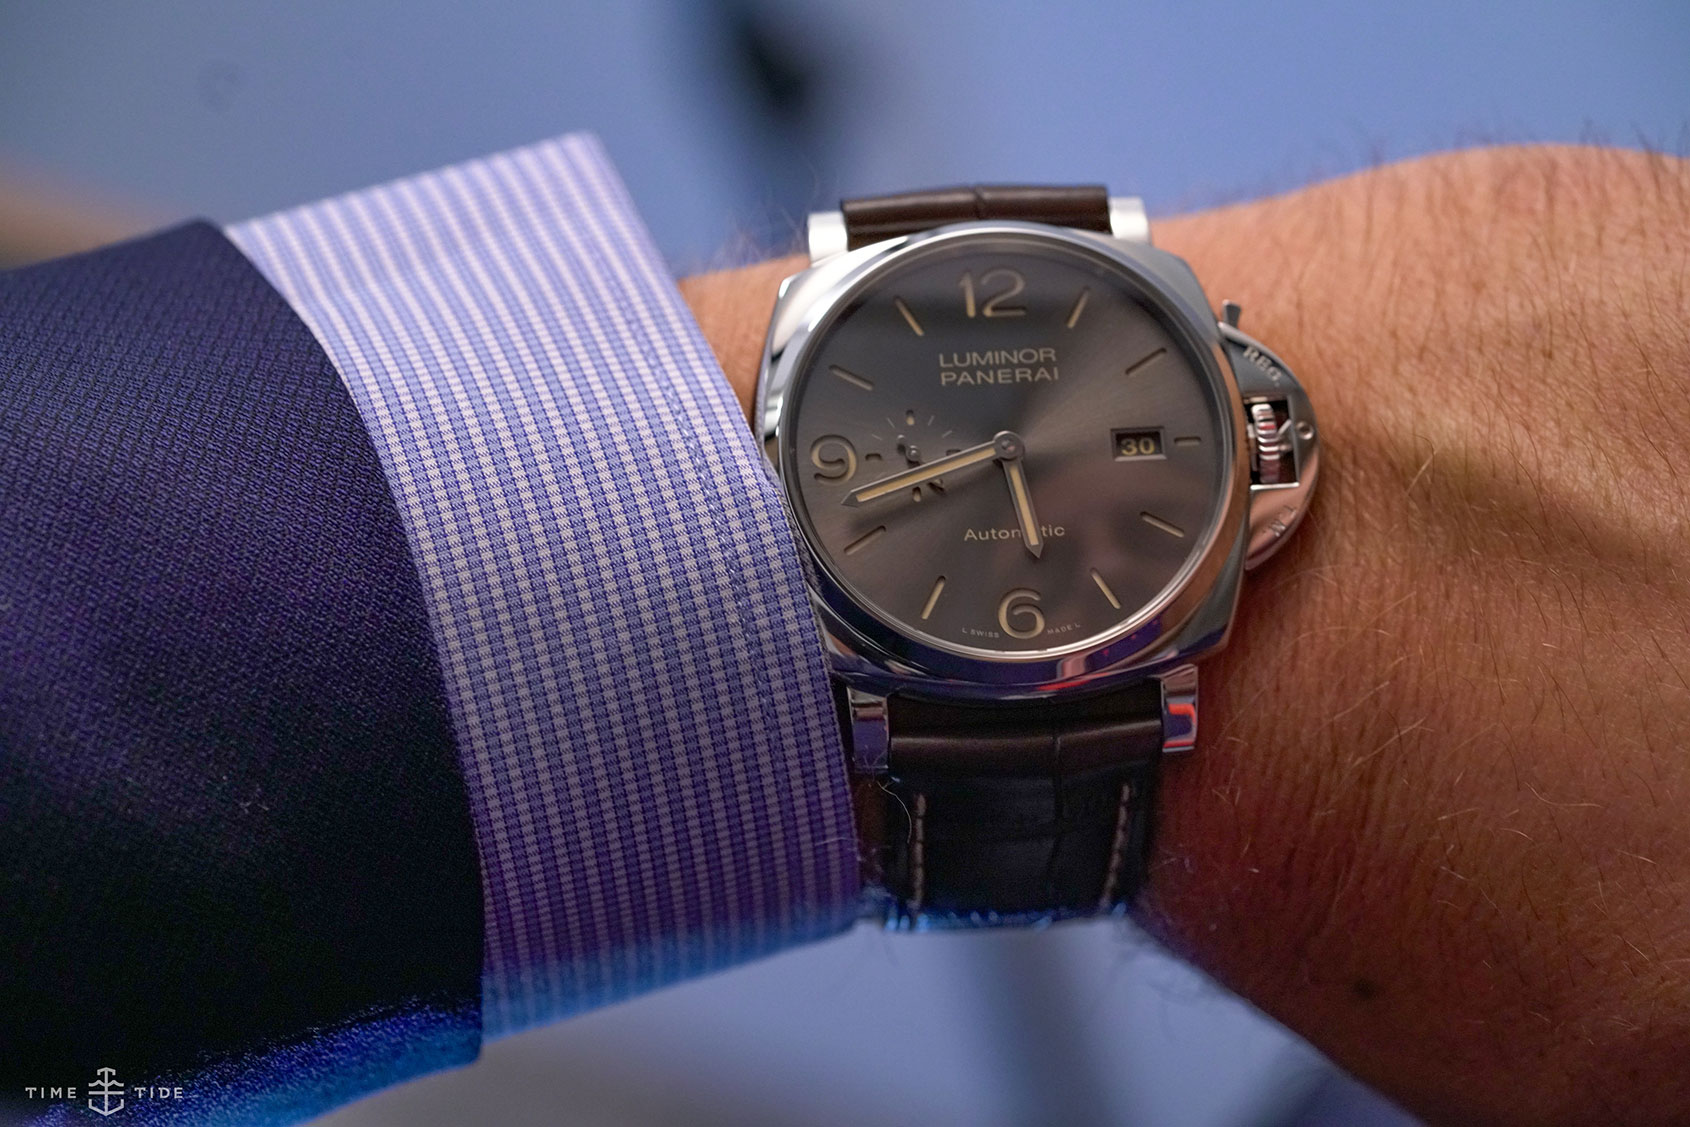 Panerai Lunimor Due Our Video Review Of The New Collection